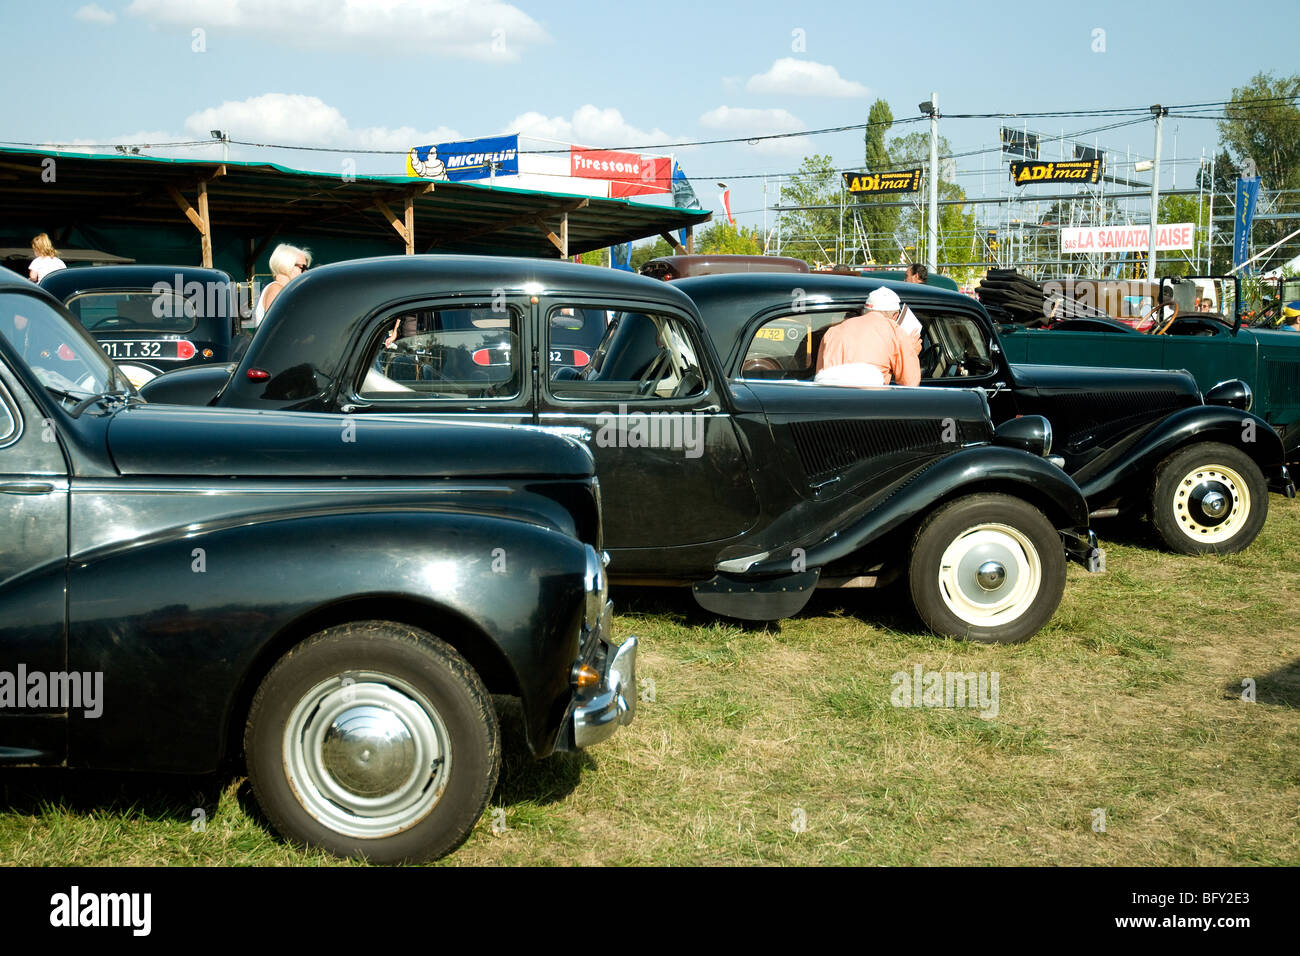 Vintage Citroen and Peugeot cars displayed at a Gascony agricultural and trade fair - Stock Image